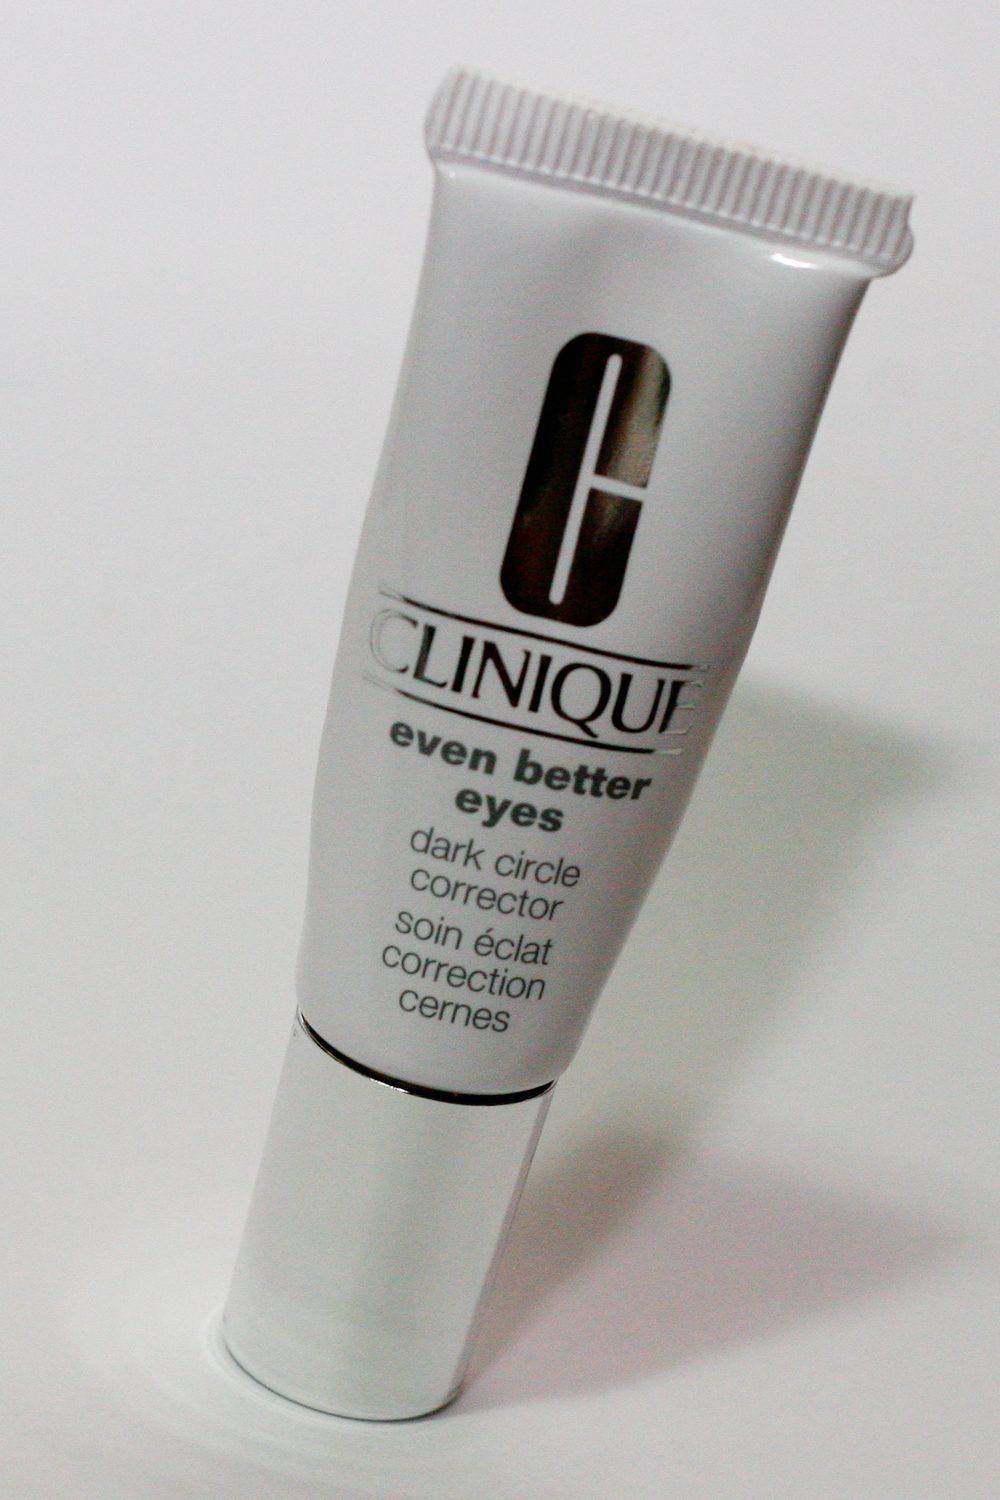 Clinique Even Better Eyes Dark Circle Corrector.